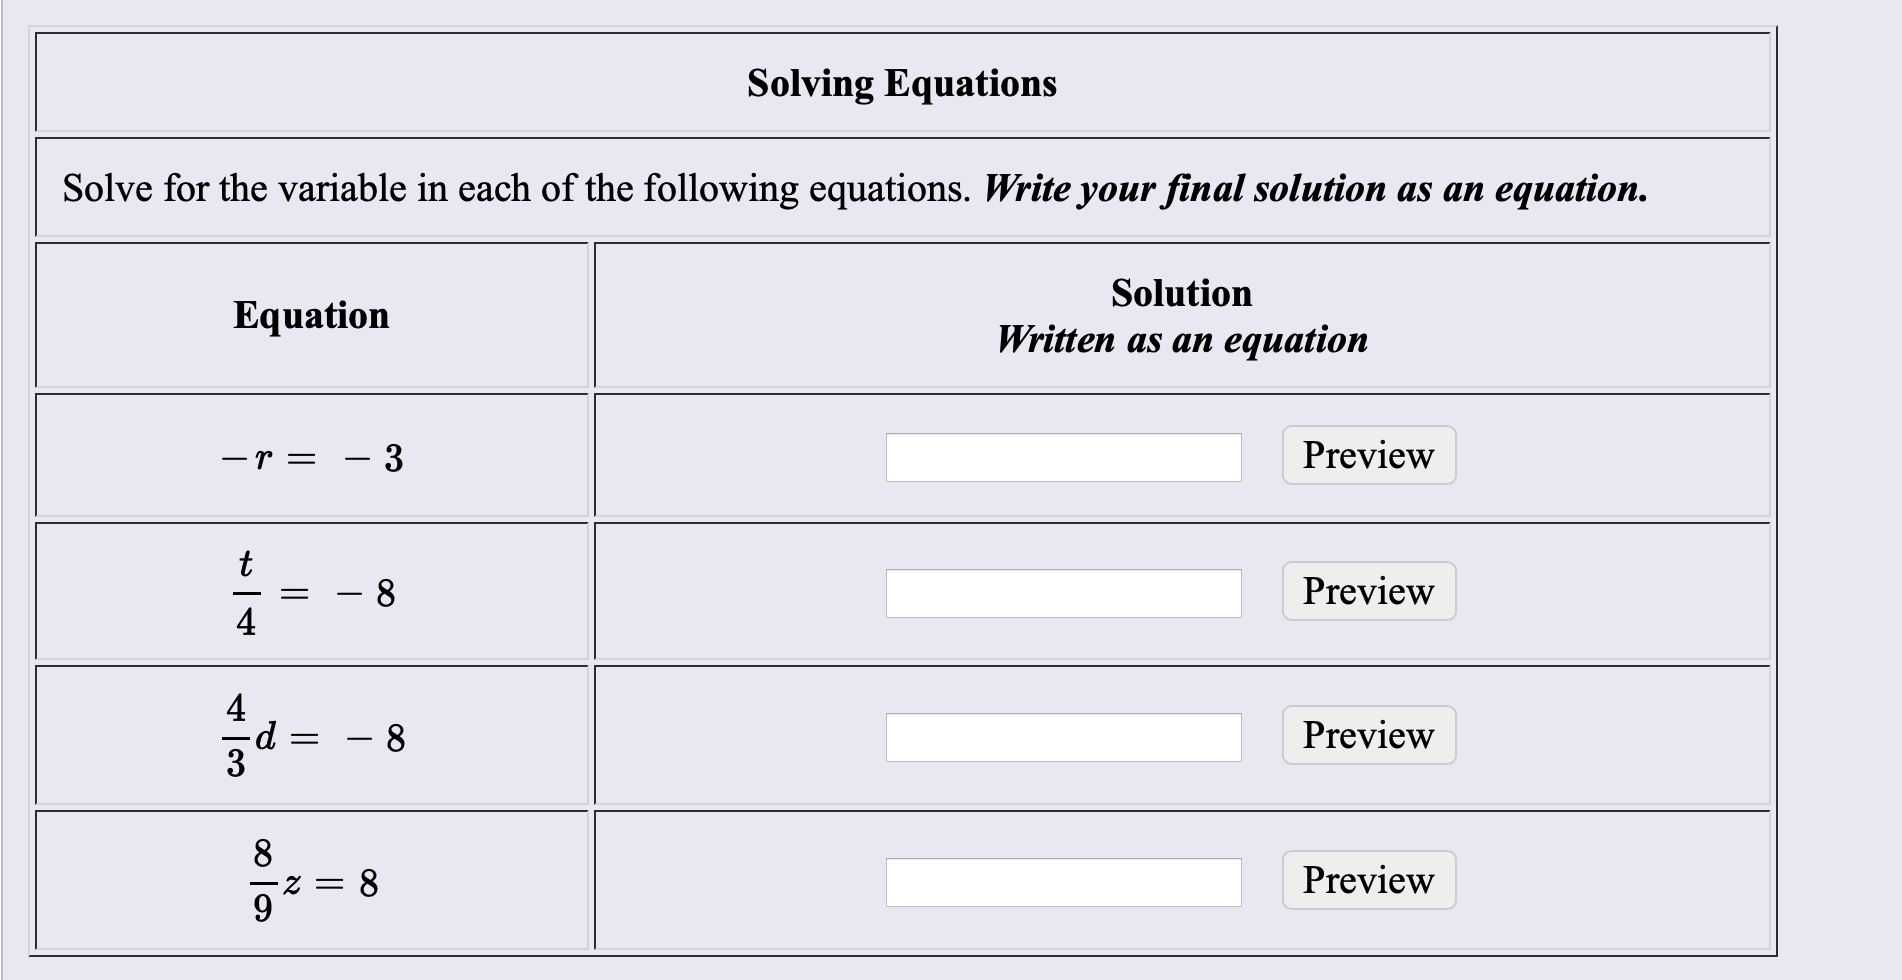 Solving Equations Solve for the variable in each of the following equations. Write your final solution as an еquation. Solution Equation Written as an equation Preview - 3 -r= t Preview 8 4 4 Preview 8 Preview Z = со